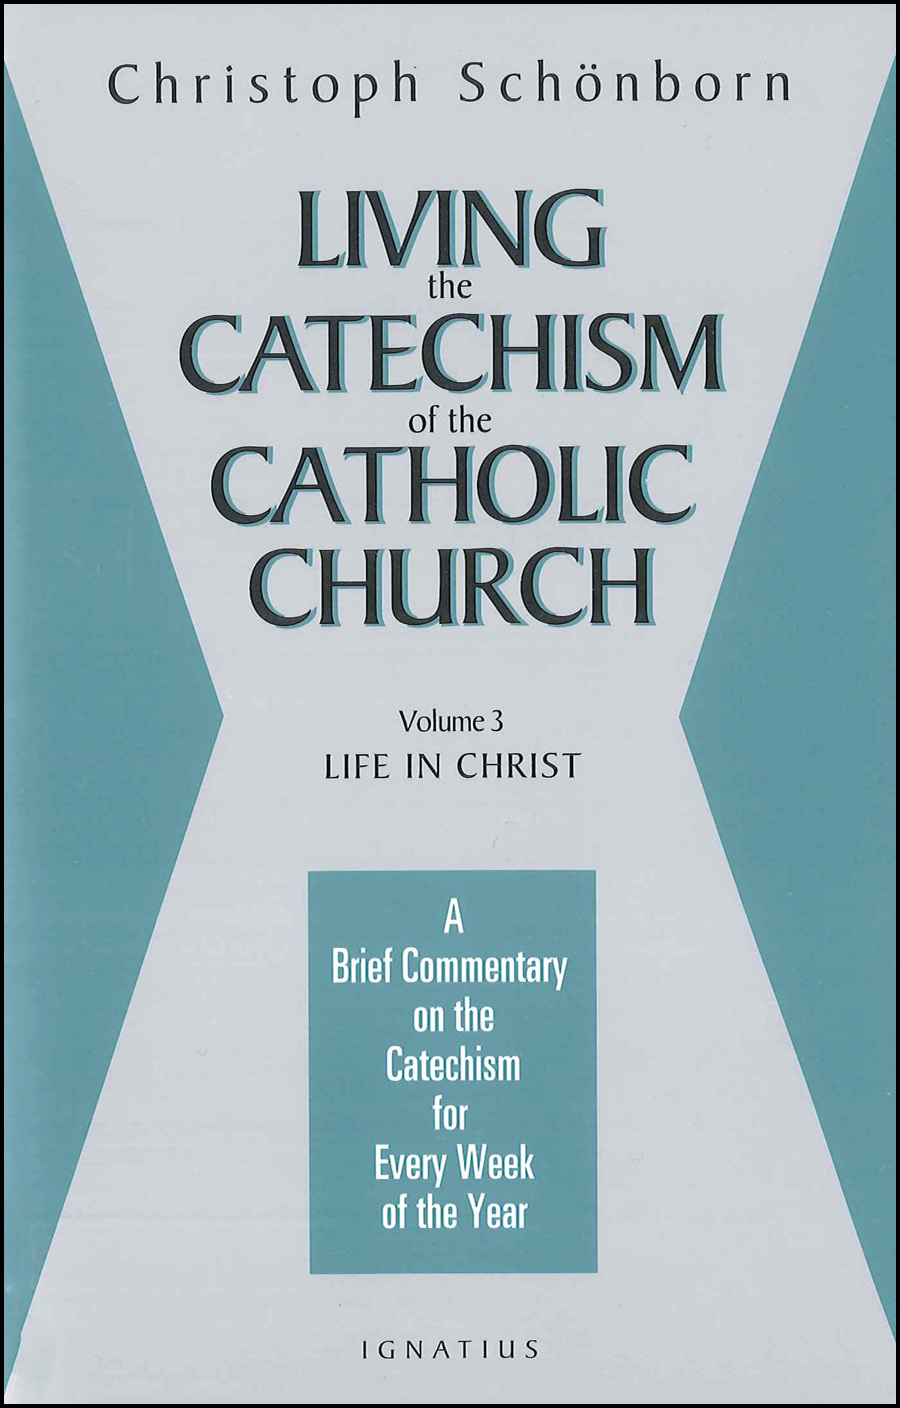 Living the Catechism of the Catholic Church Vol 3